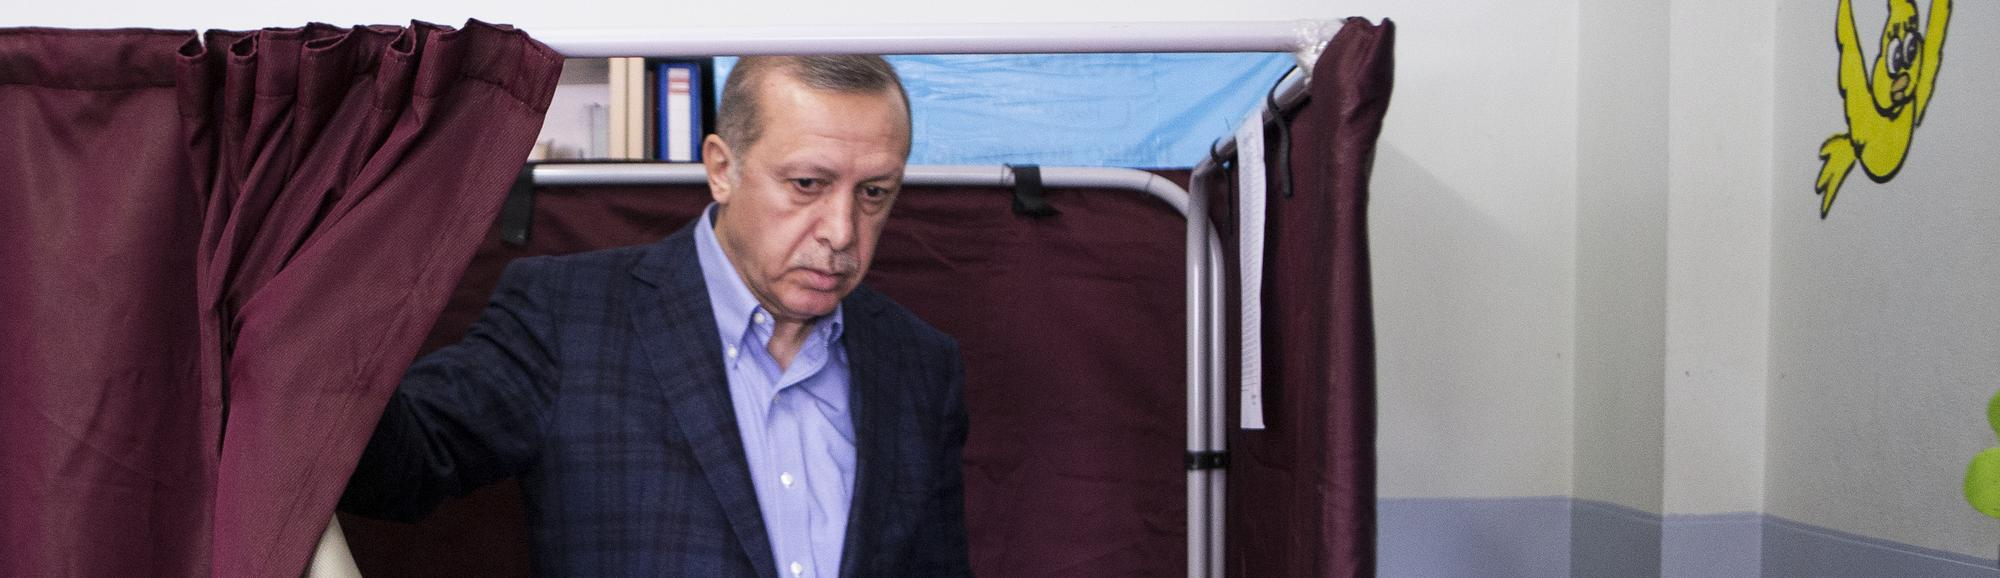 Erdogan and His Party On Course for Huge Victory in Pivotal Turkish Election